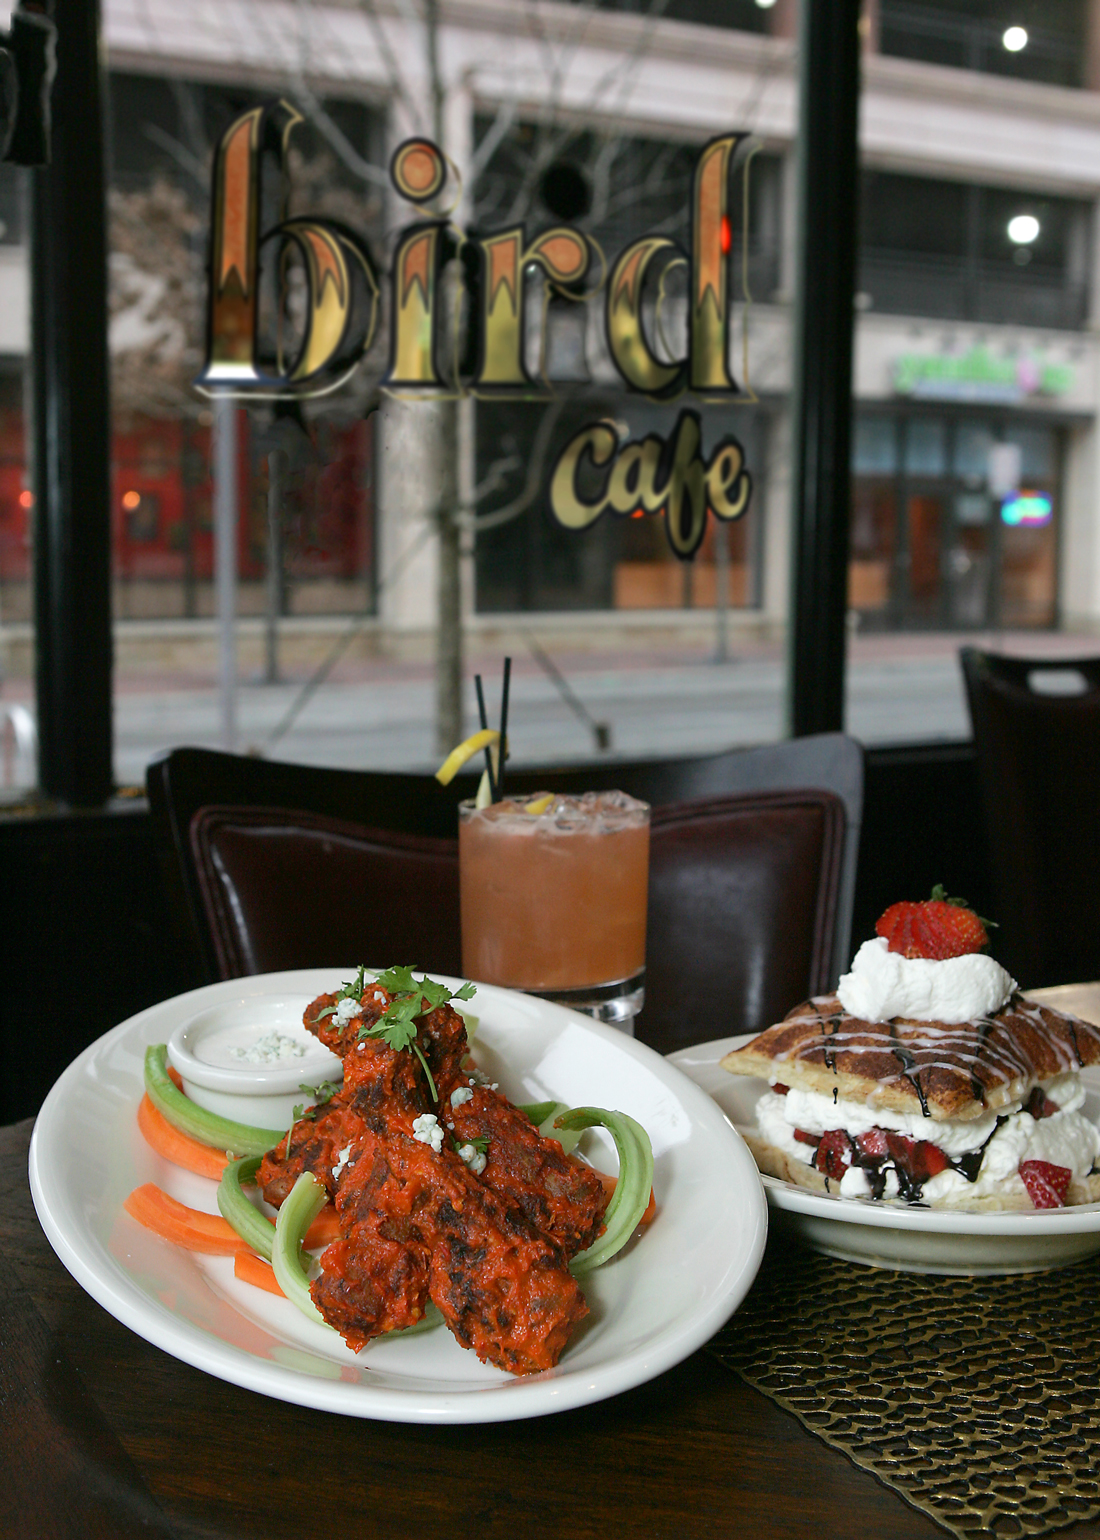 Crispy duck wings and chocolate-strawberry Napoleon await at Bird Café. Lee Chastain